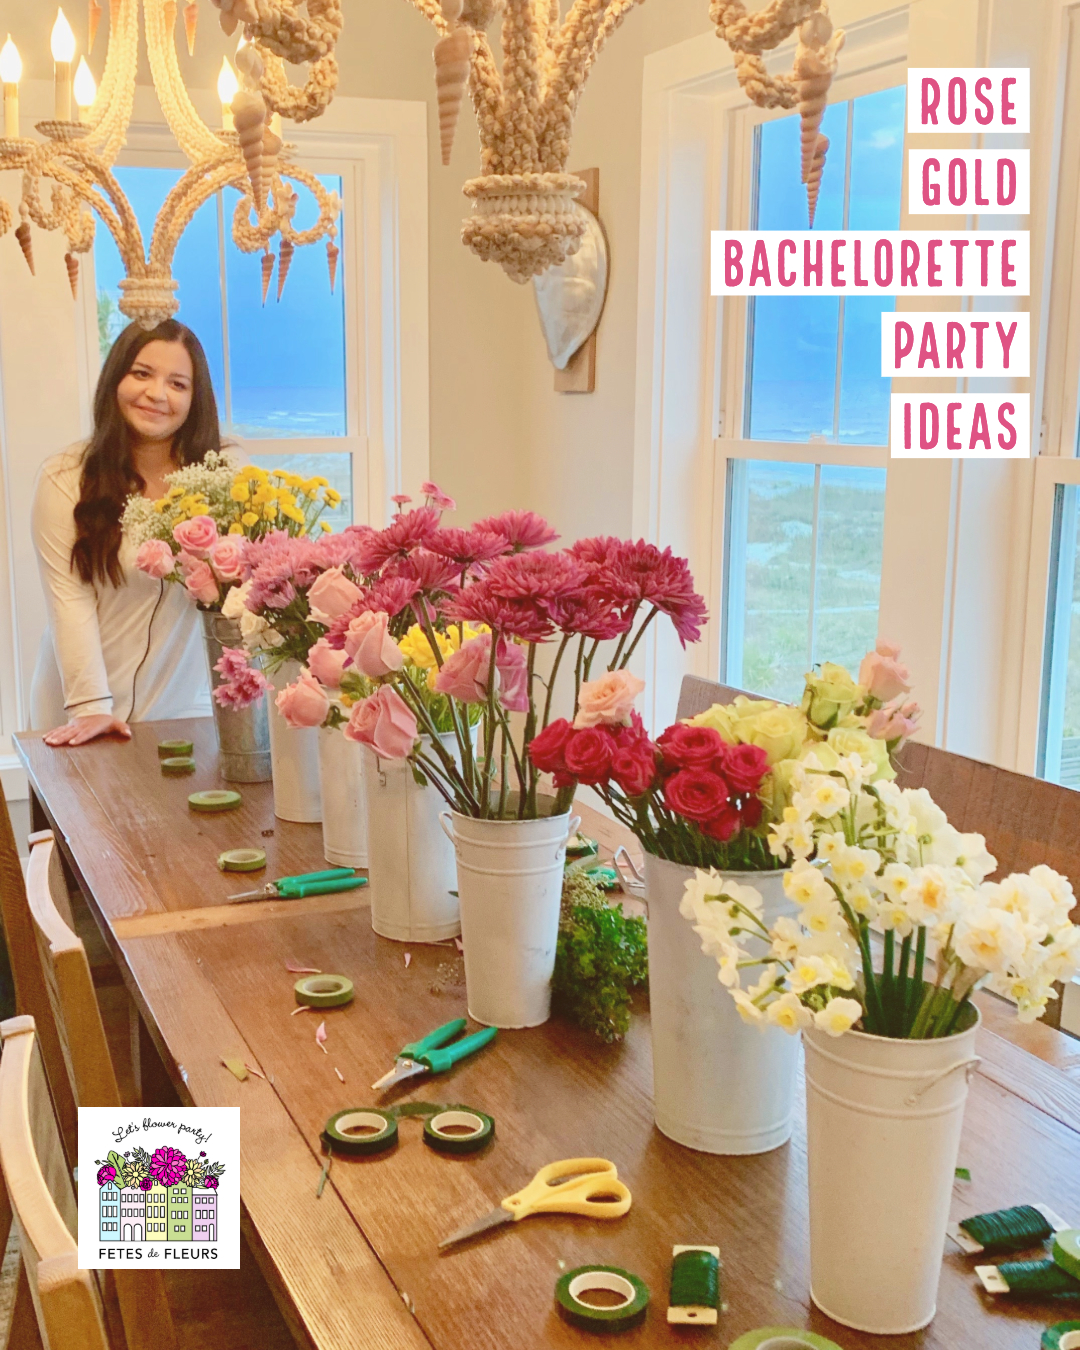 rose gold bachelorette party ideas